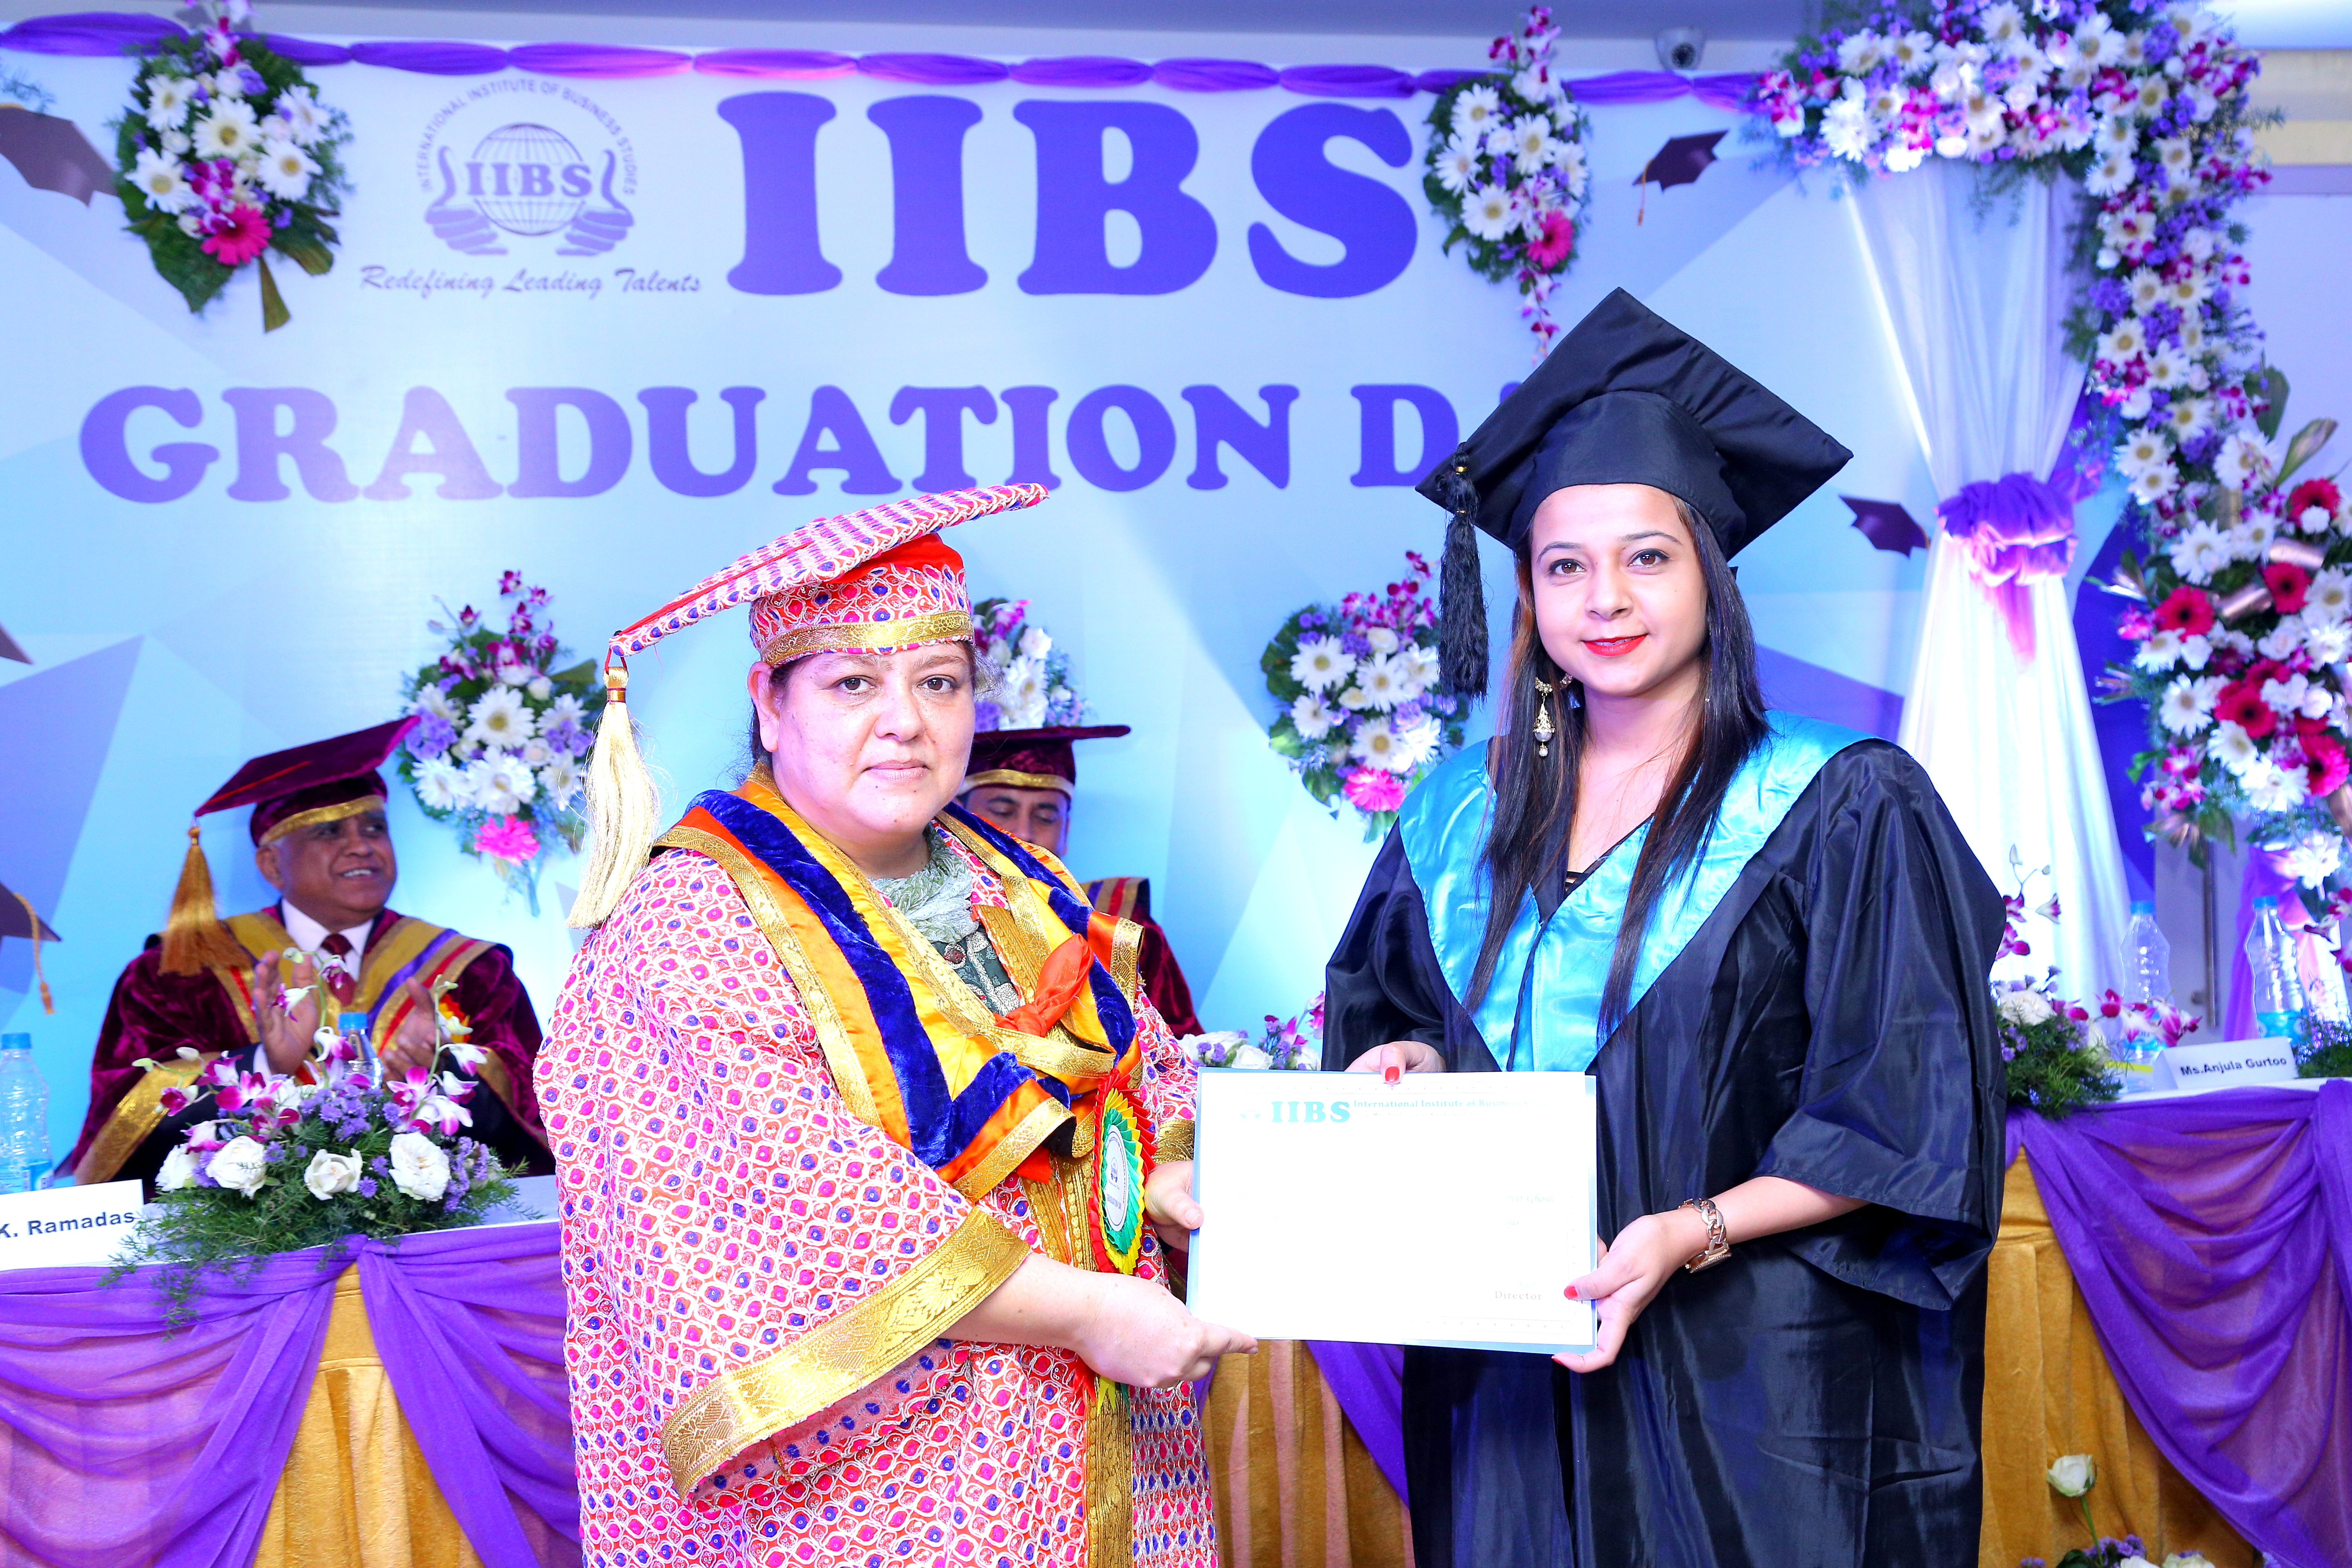 IIBS Graduation Day - a day to congregate, acknowledge, and relive